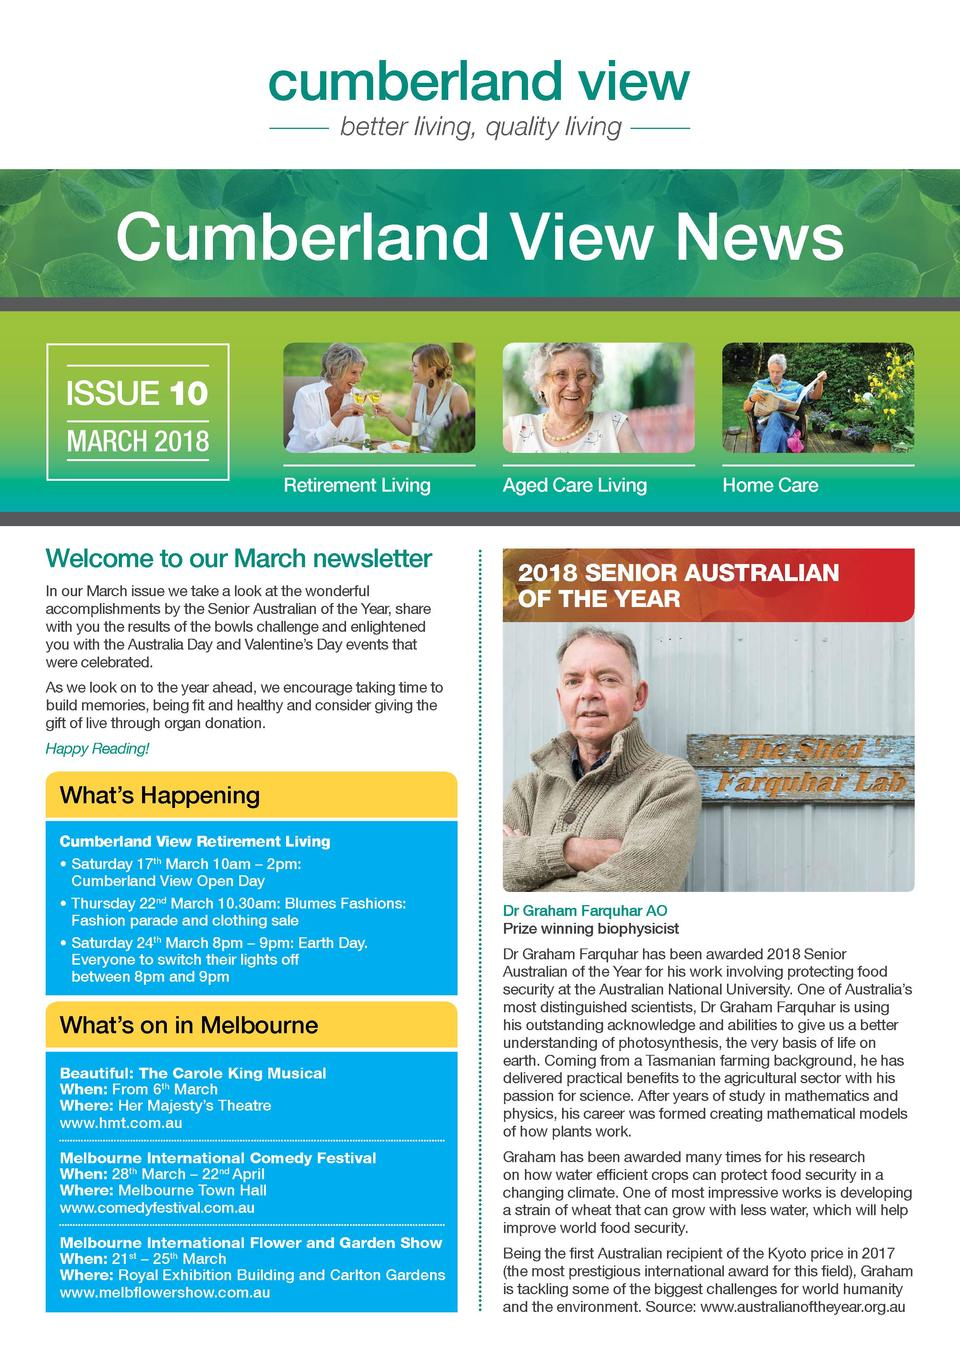 cumberland view better living, quality living  Cumberland View News ISSUE 10 MARCH 2018 Retirement Living  Welcome to our ...